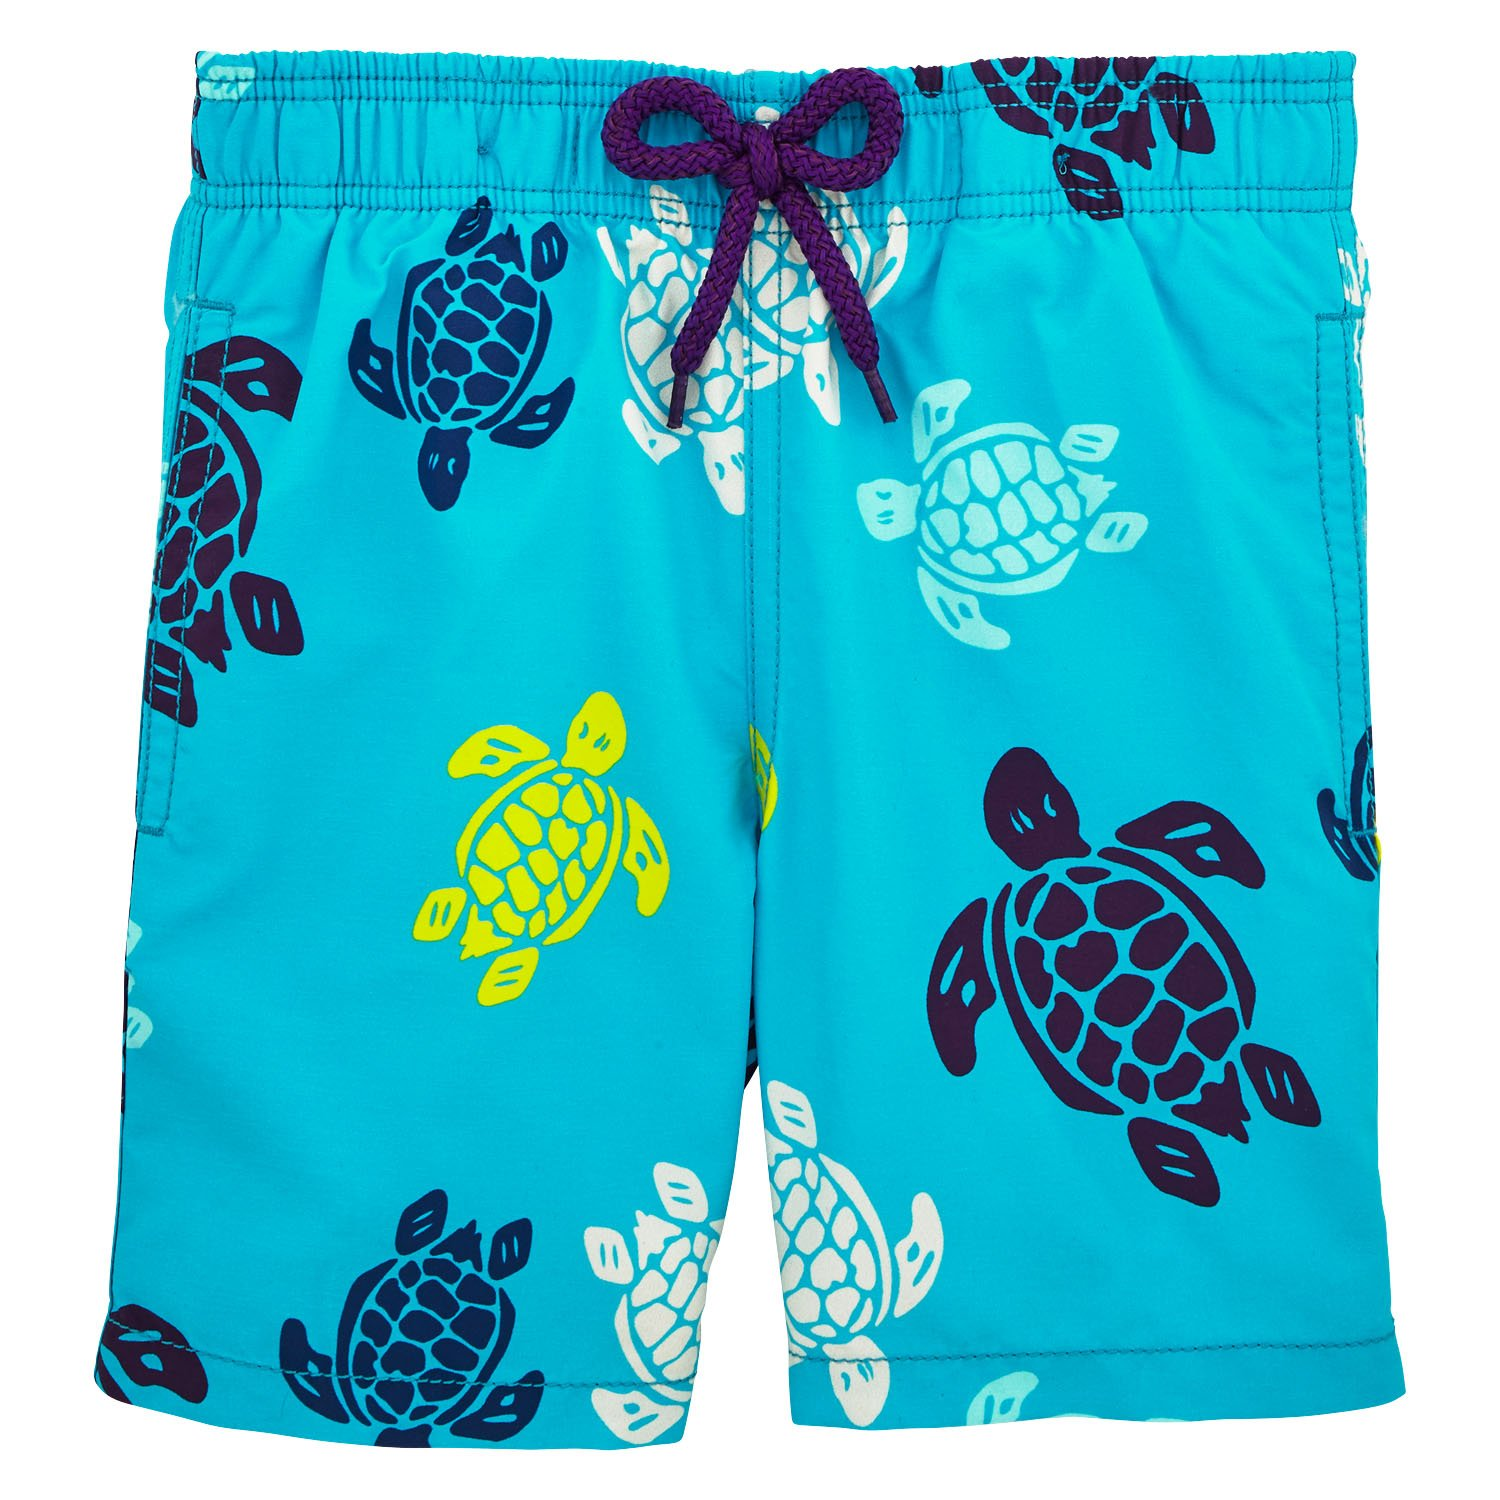 Vilebrequin Tortues Multicolores Swim Shorts - Boys - Azure - 4Yrs